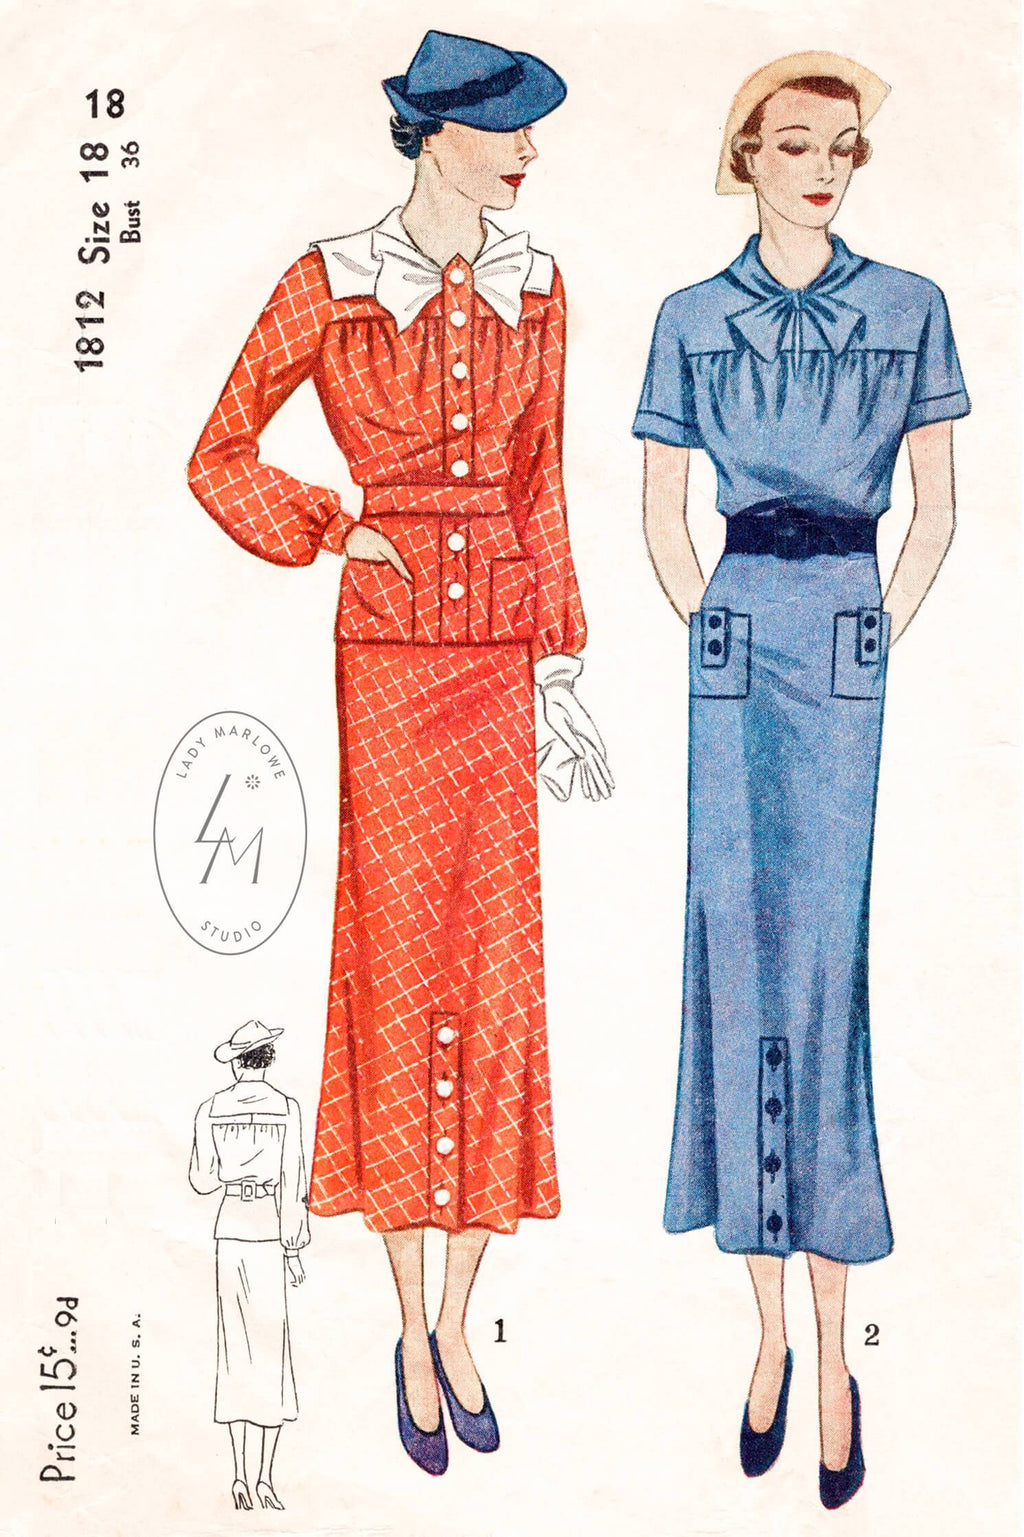 Simplicity 1812 vintage sewing pattern 1930s 30s dress blouse & skirt